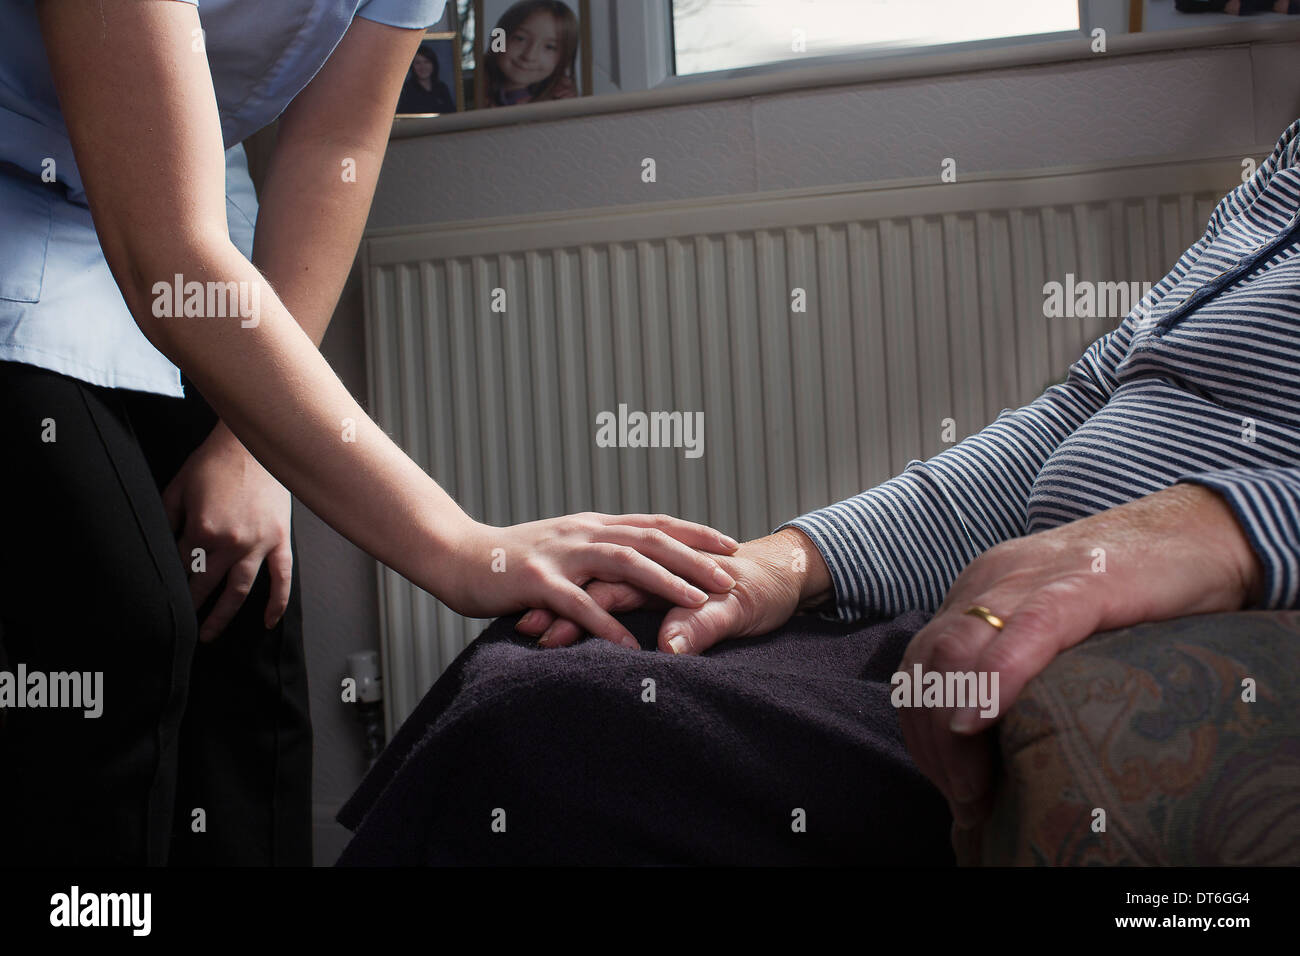 Personal care assistant comforting senior woman - Stock Image